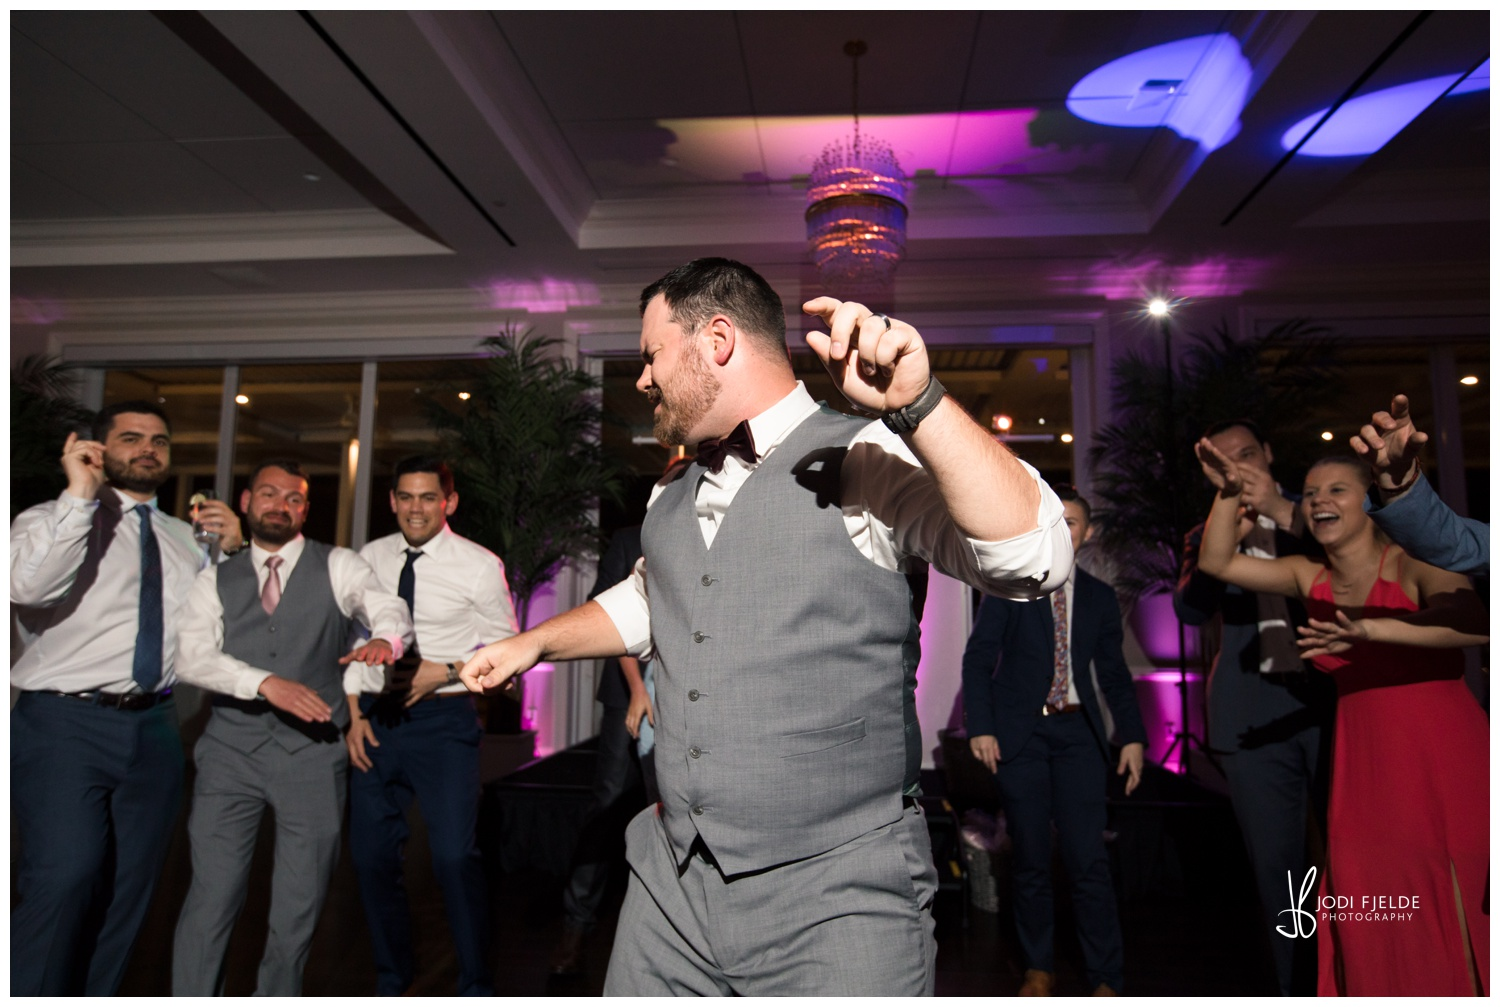 groom getting down to some great music